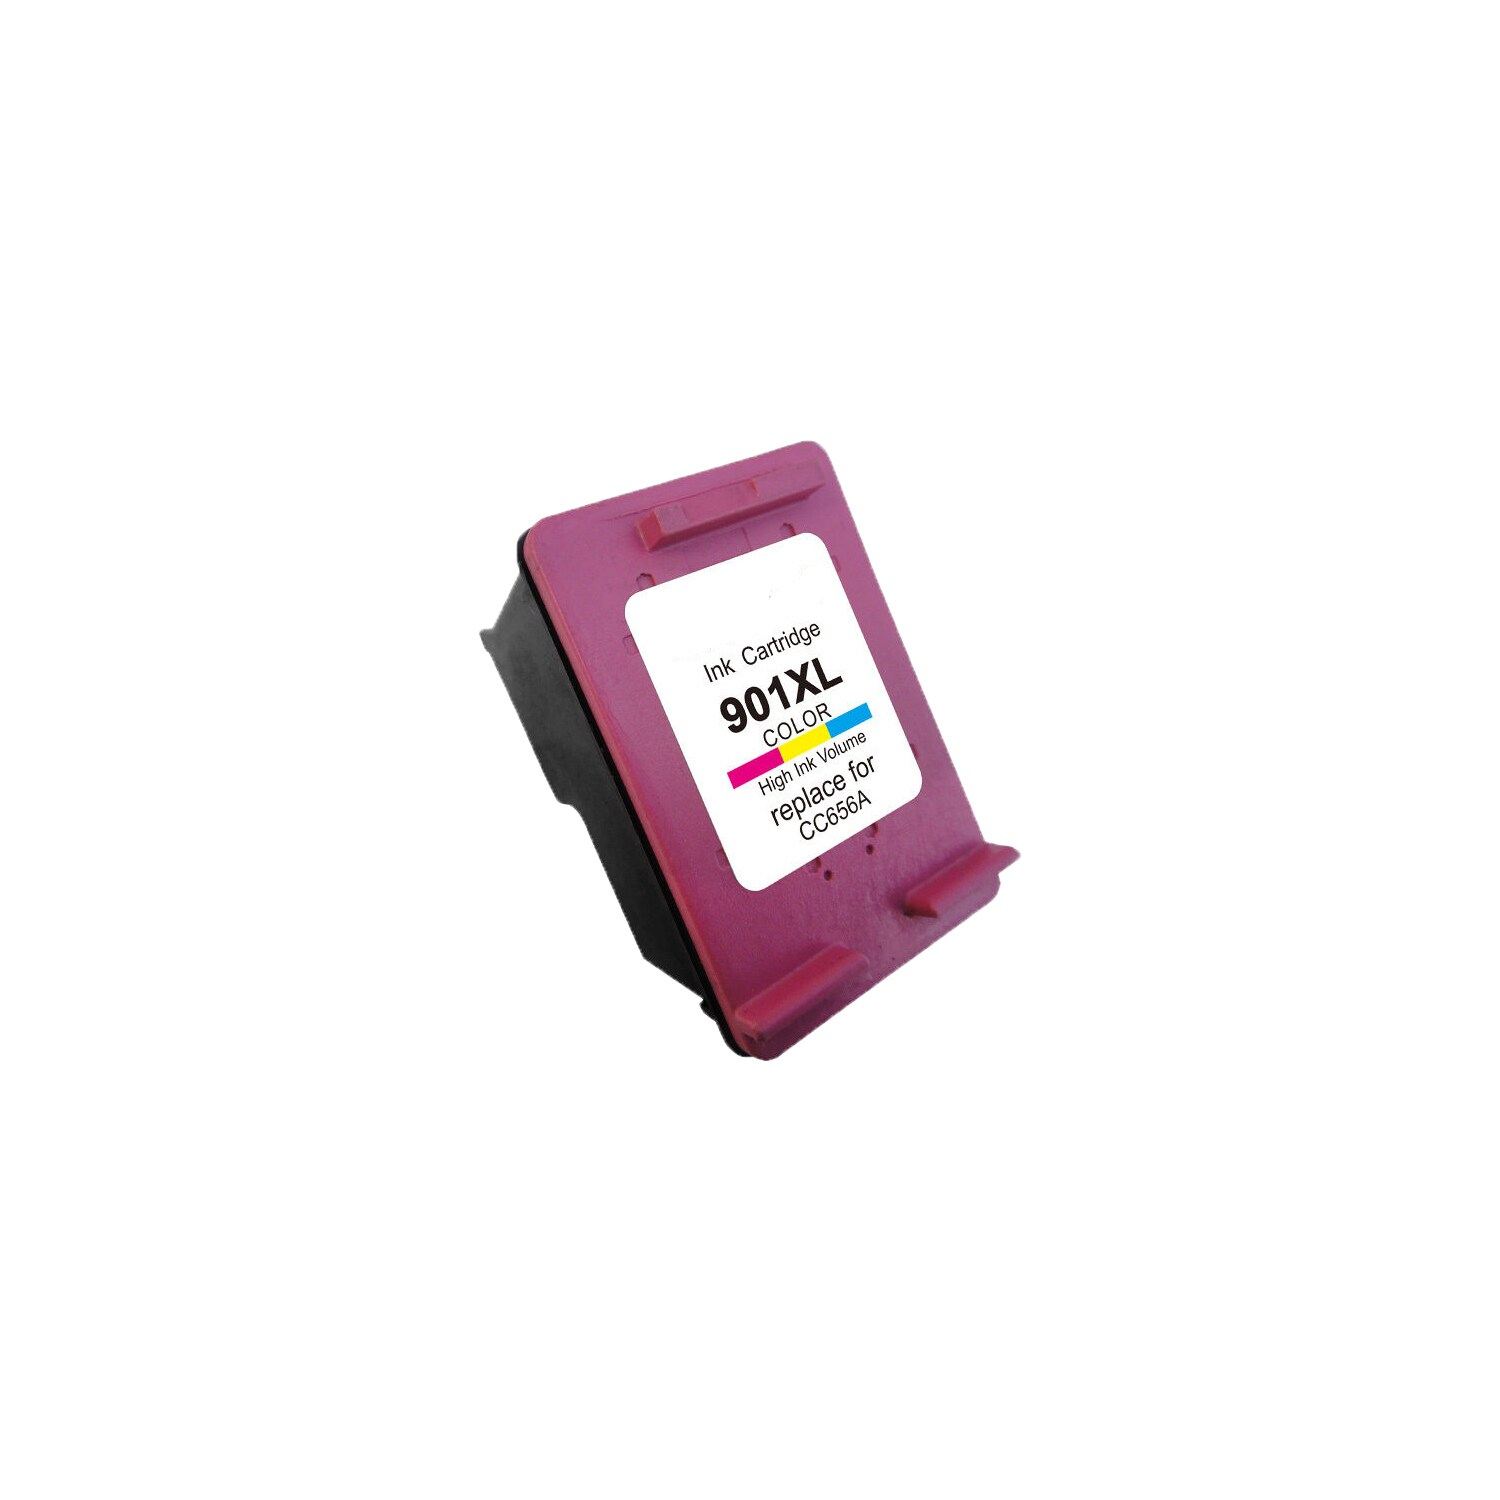 N 1PK 901 Xlcmy (CC656AN) Compatible Ink Cartridge For HP...